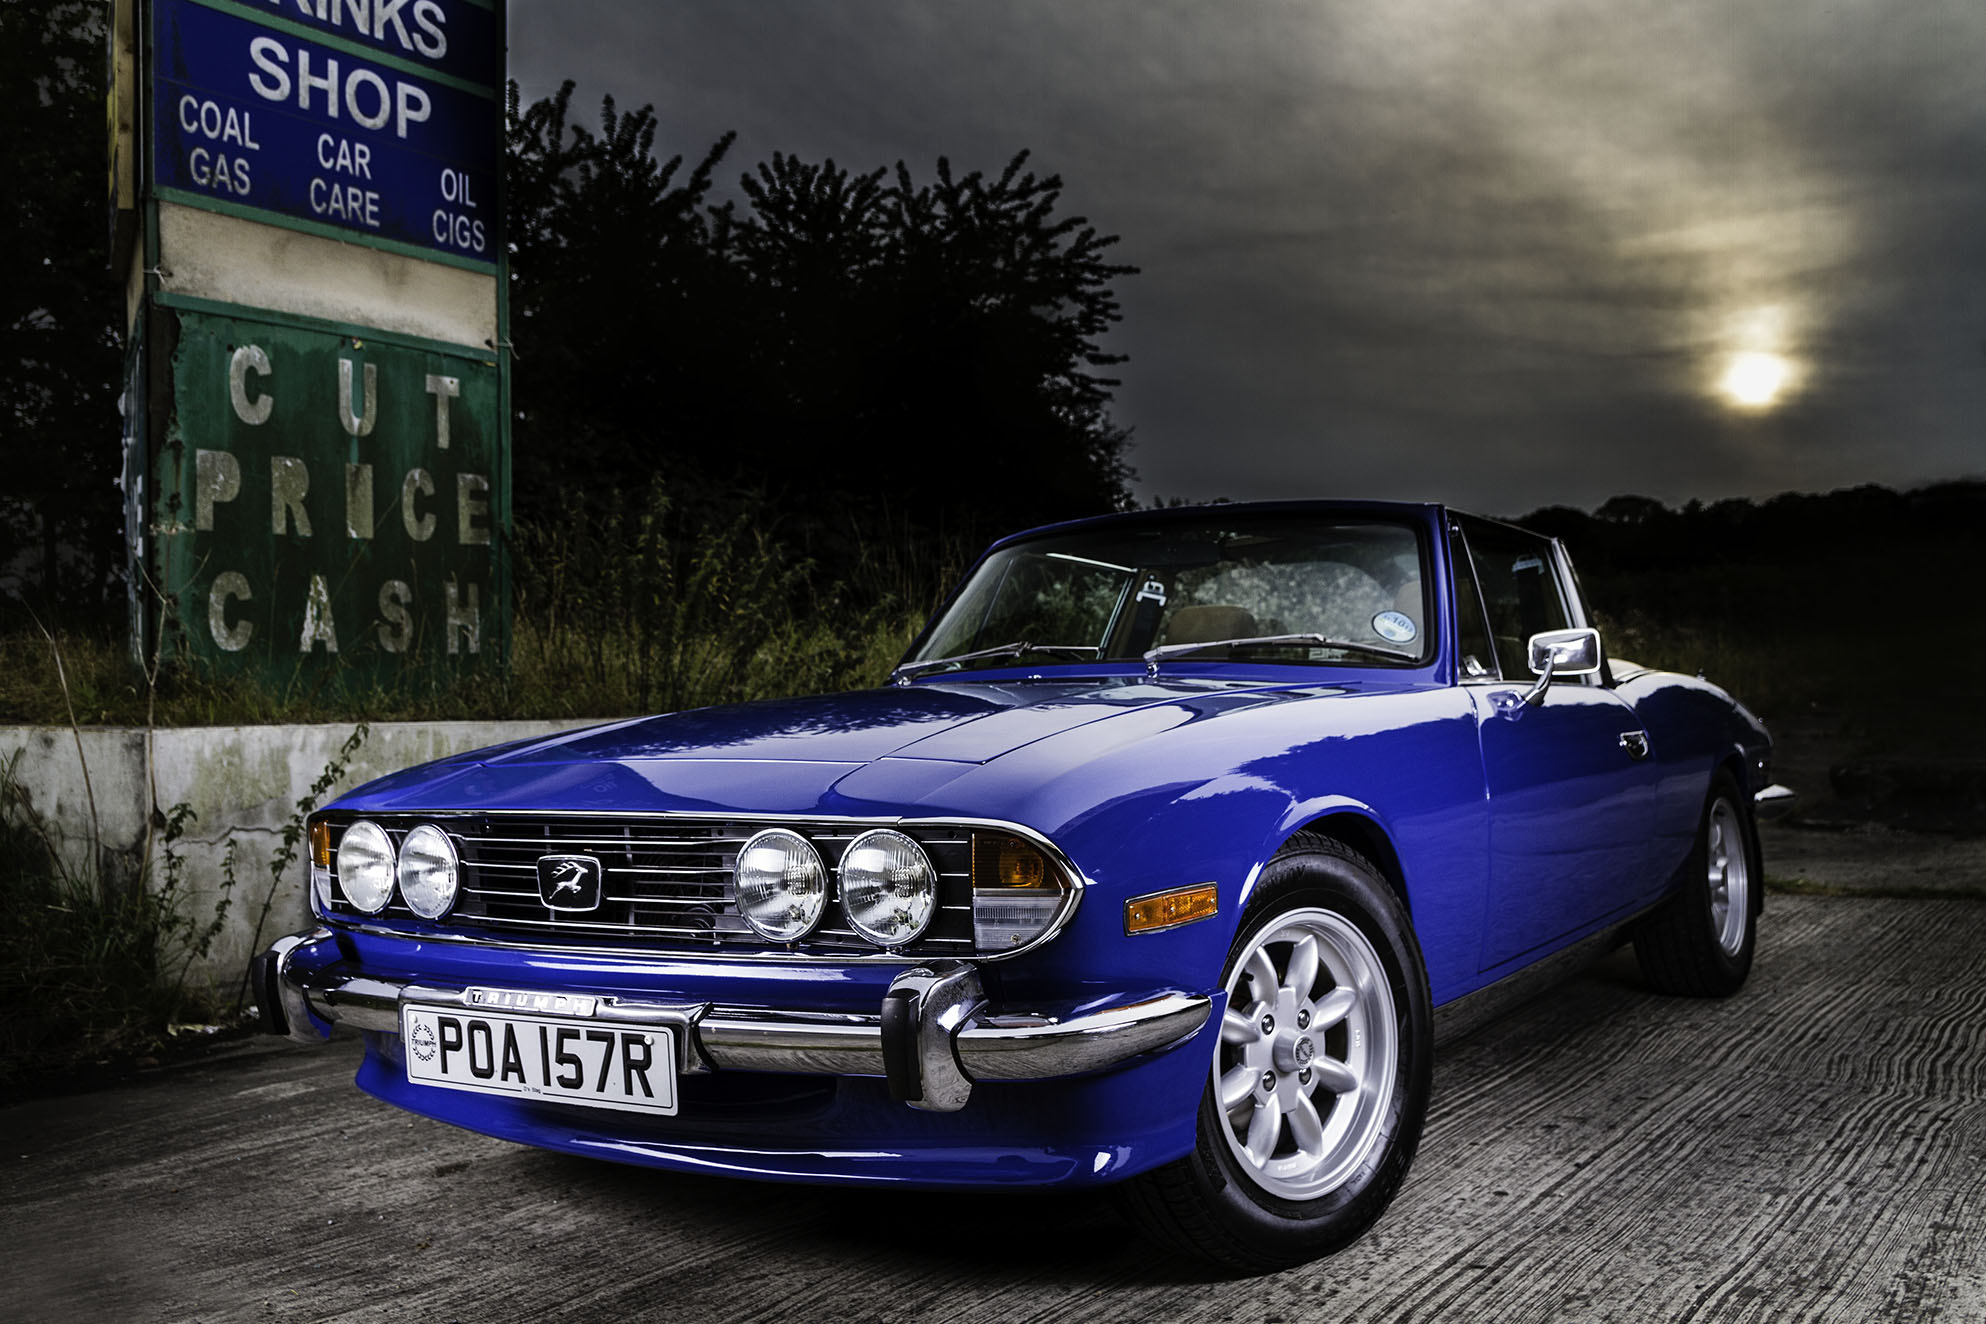 Photograph Triumph Stag by Steve Bryson on 500px